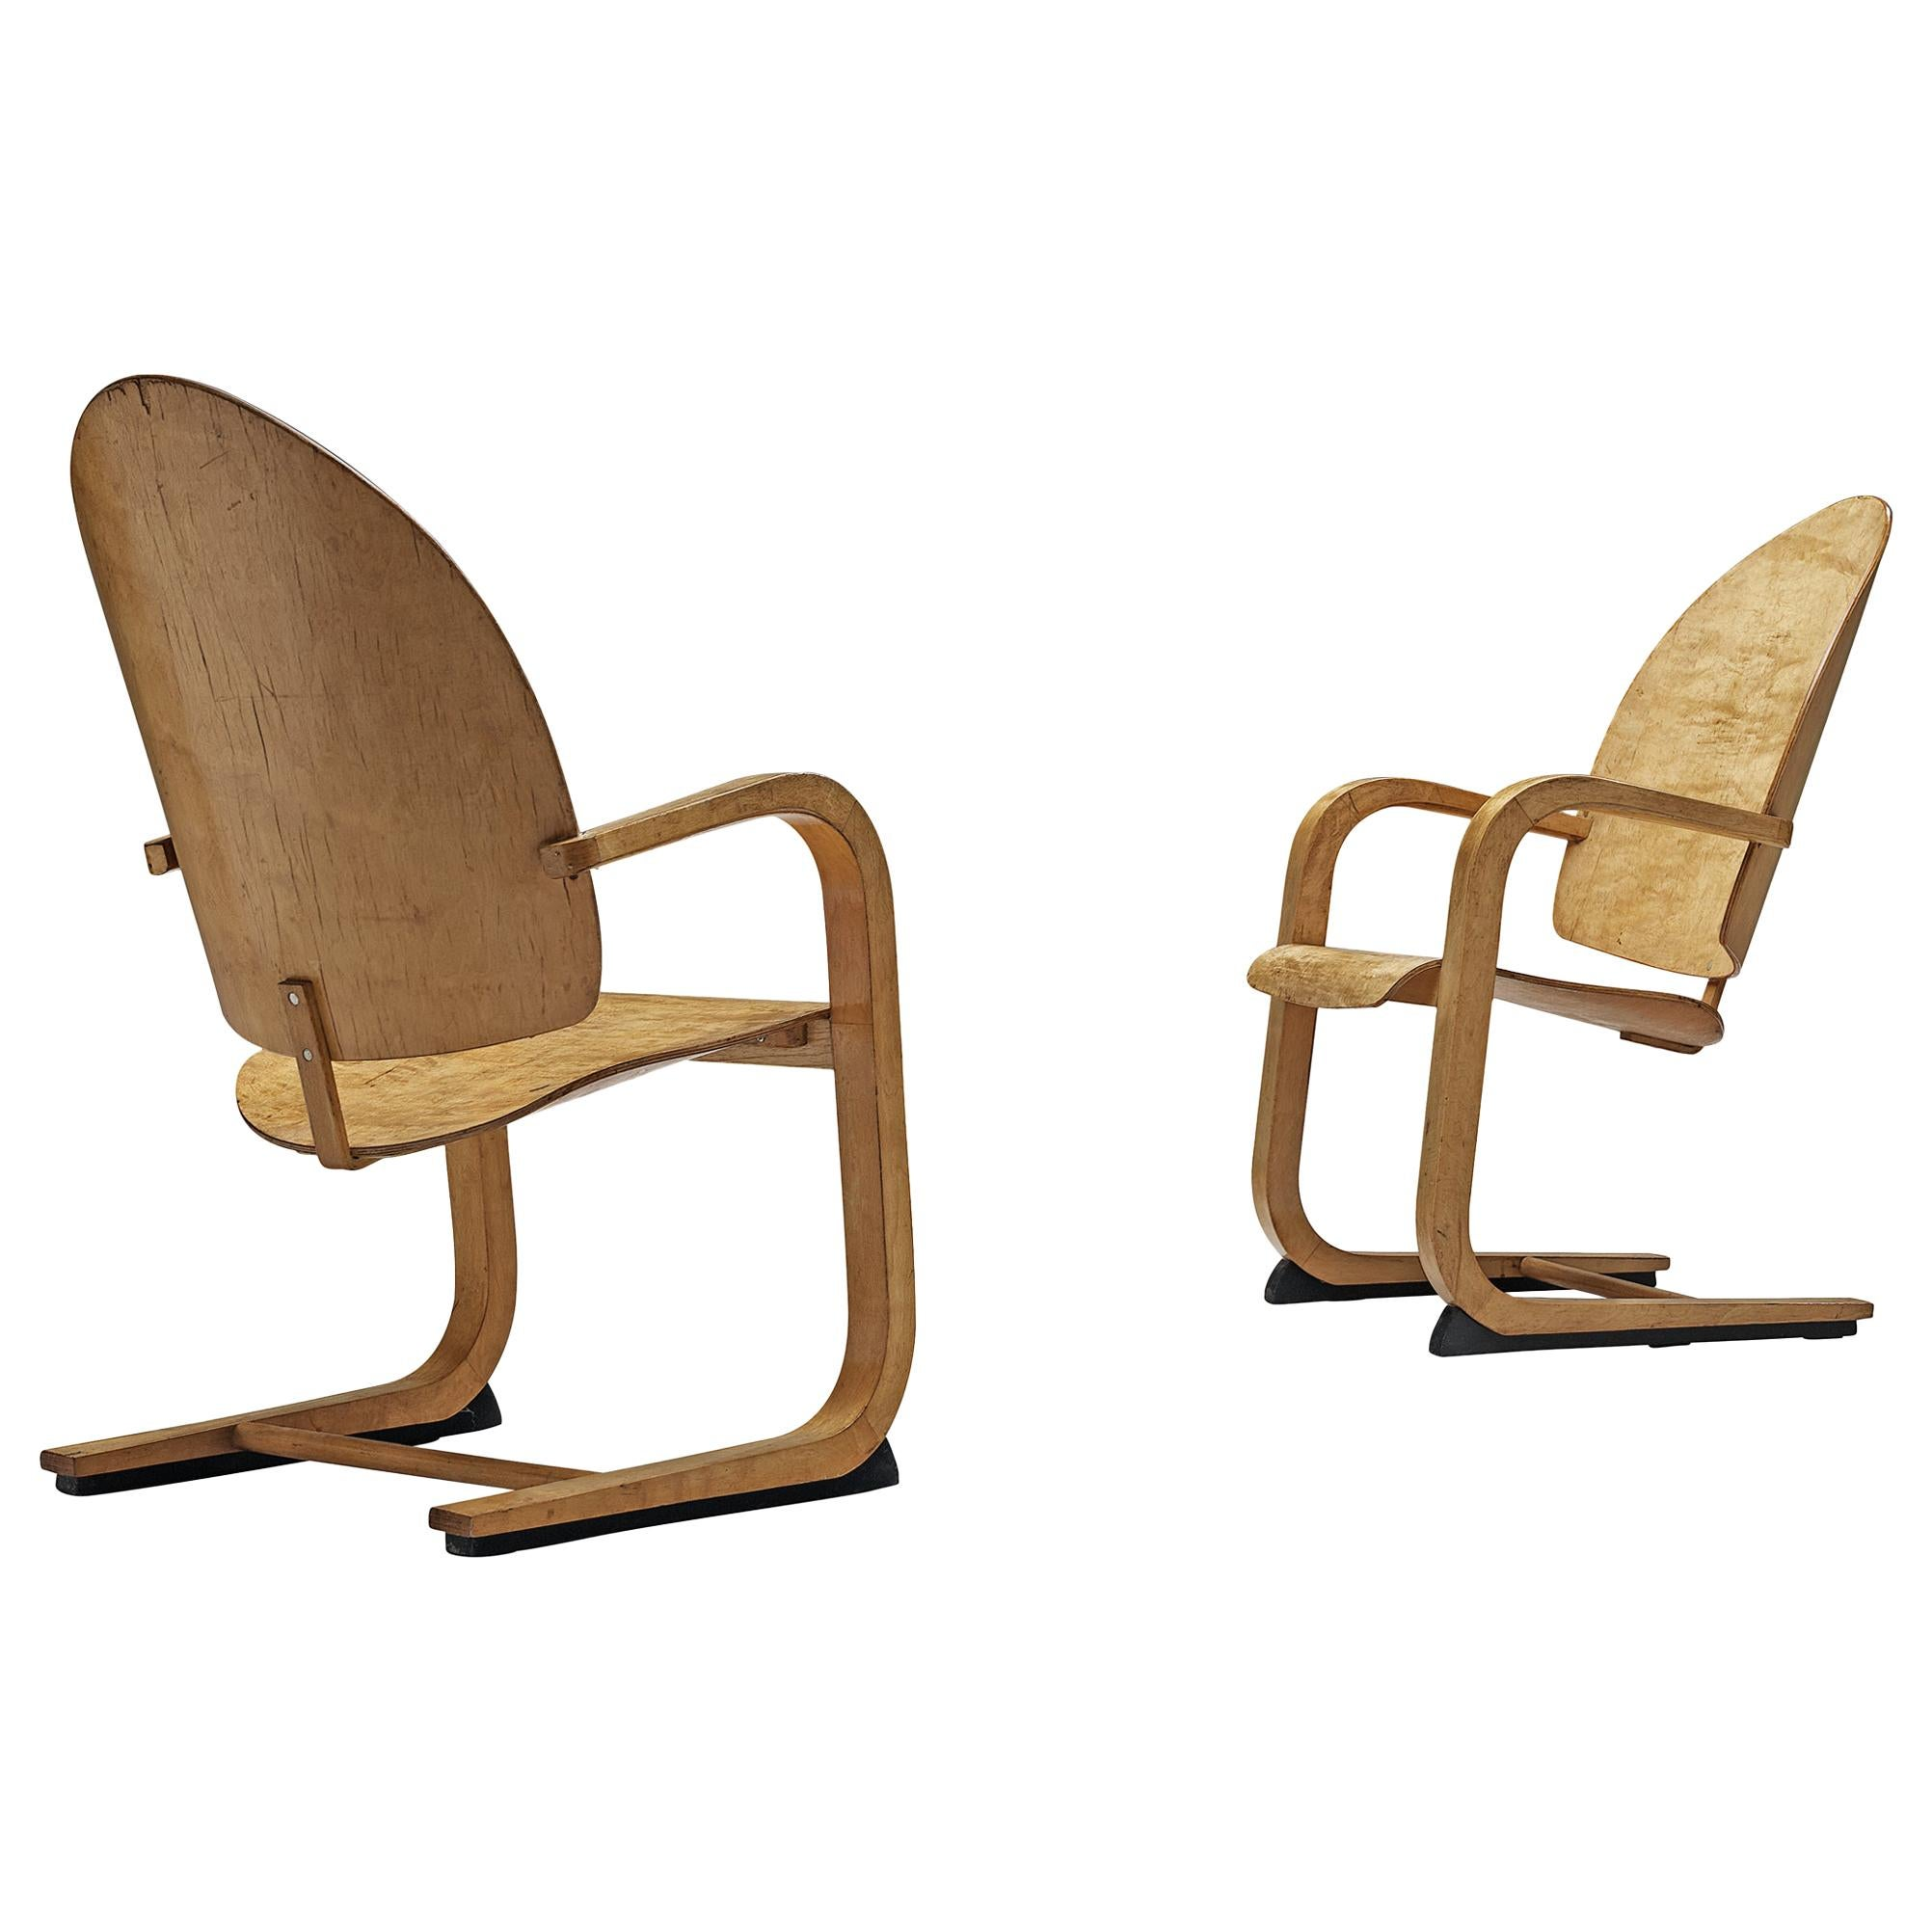 Pair of Cantilever Armchairs in Birch, 1930s